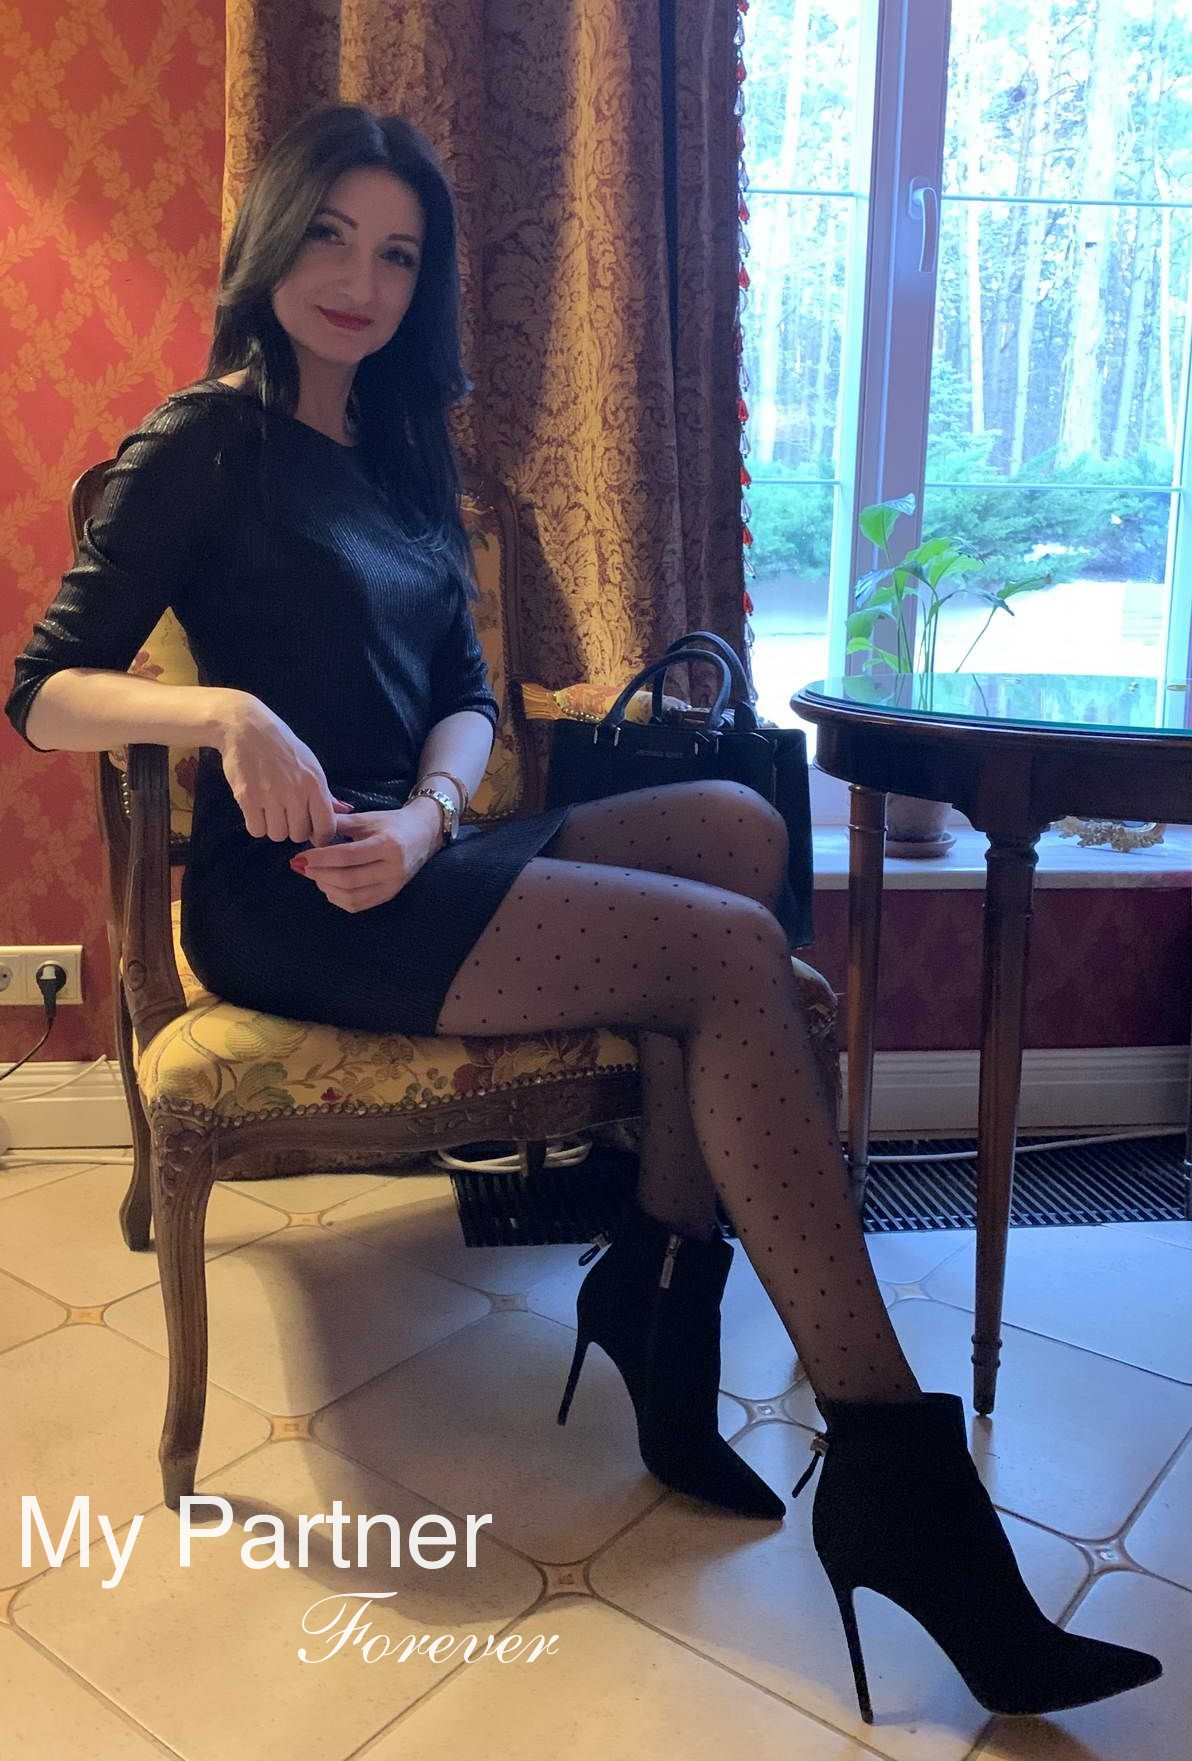 Datingsite to Meet Sexy Belarusian Lady Irina from Grodno, Belarus